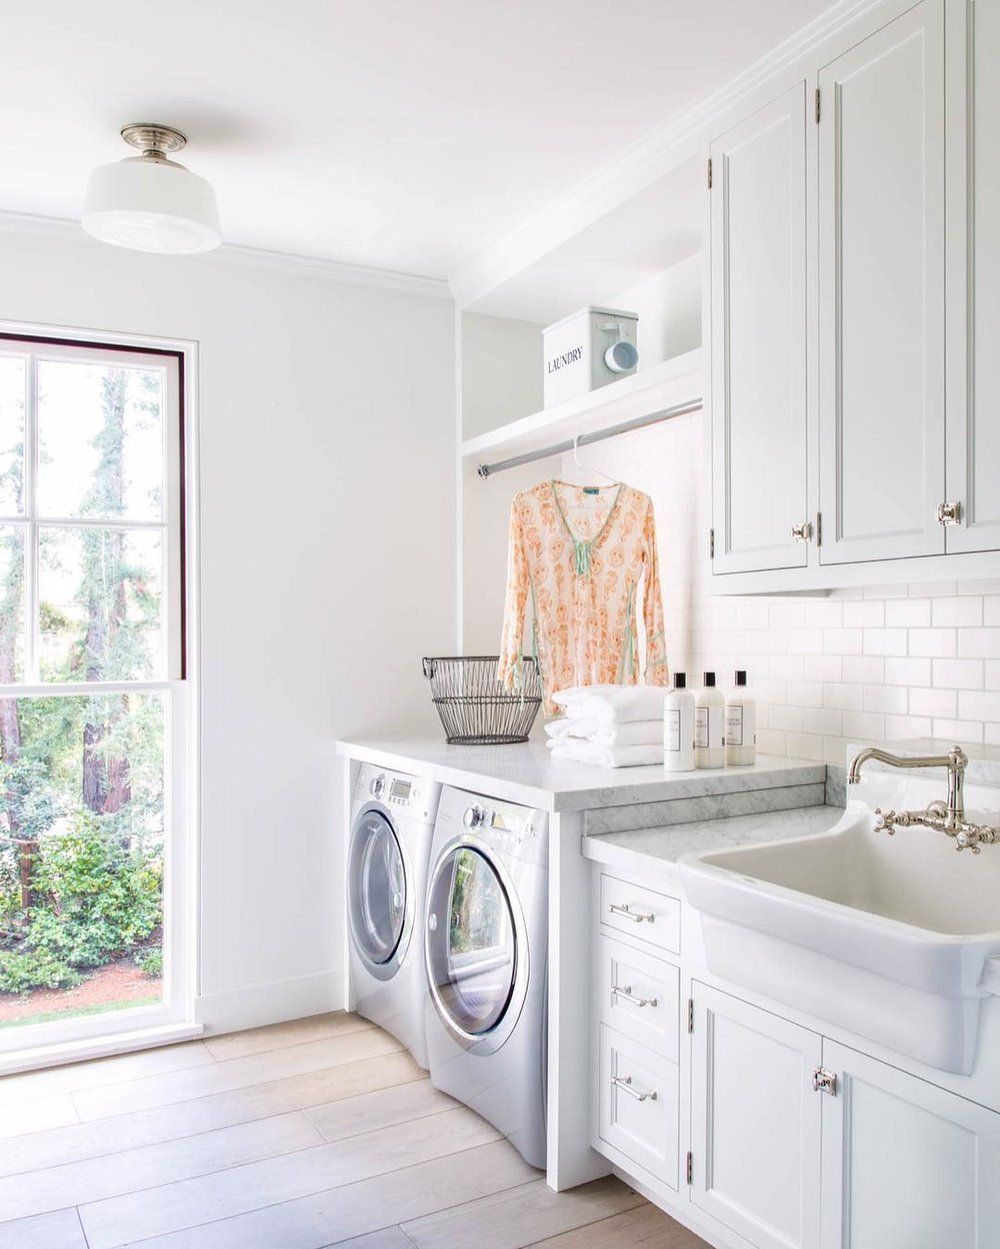 10 Clever Clothes Hanging Solutions For Your Laundry Room 9 Vintage Laundry Room Decor Hanging Racks Laundry Room